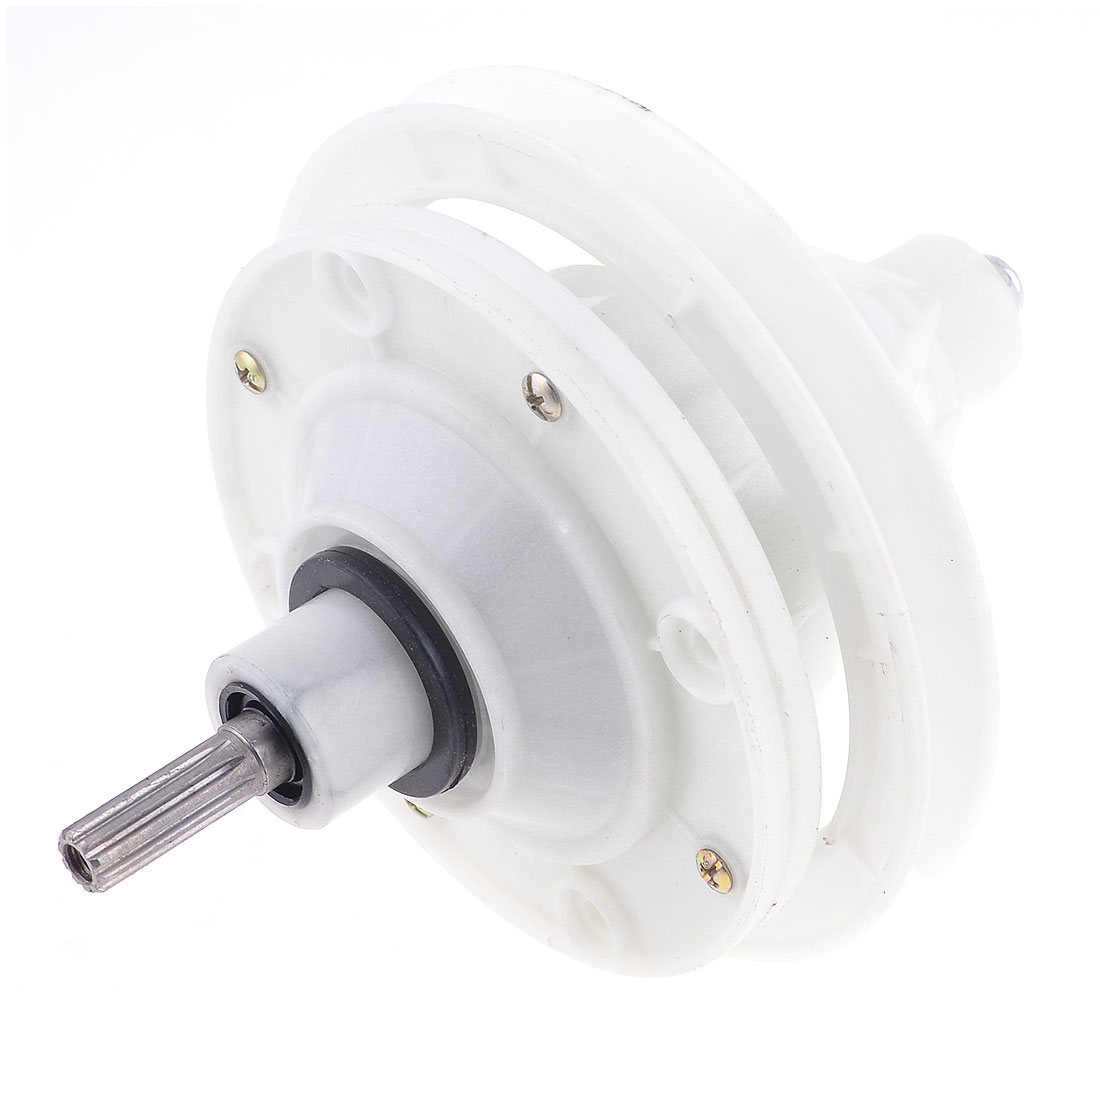 "4.5"" Dia Speed Gear Box Round Shaft NBR Washing Machine Gear Reducer Off White"